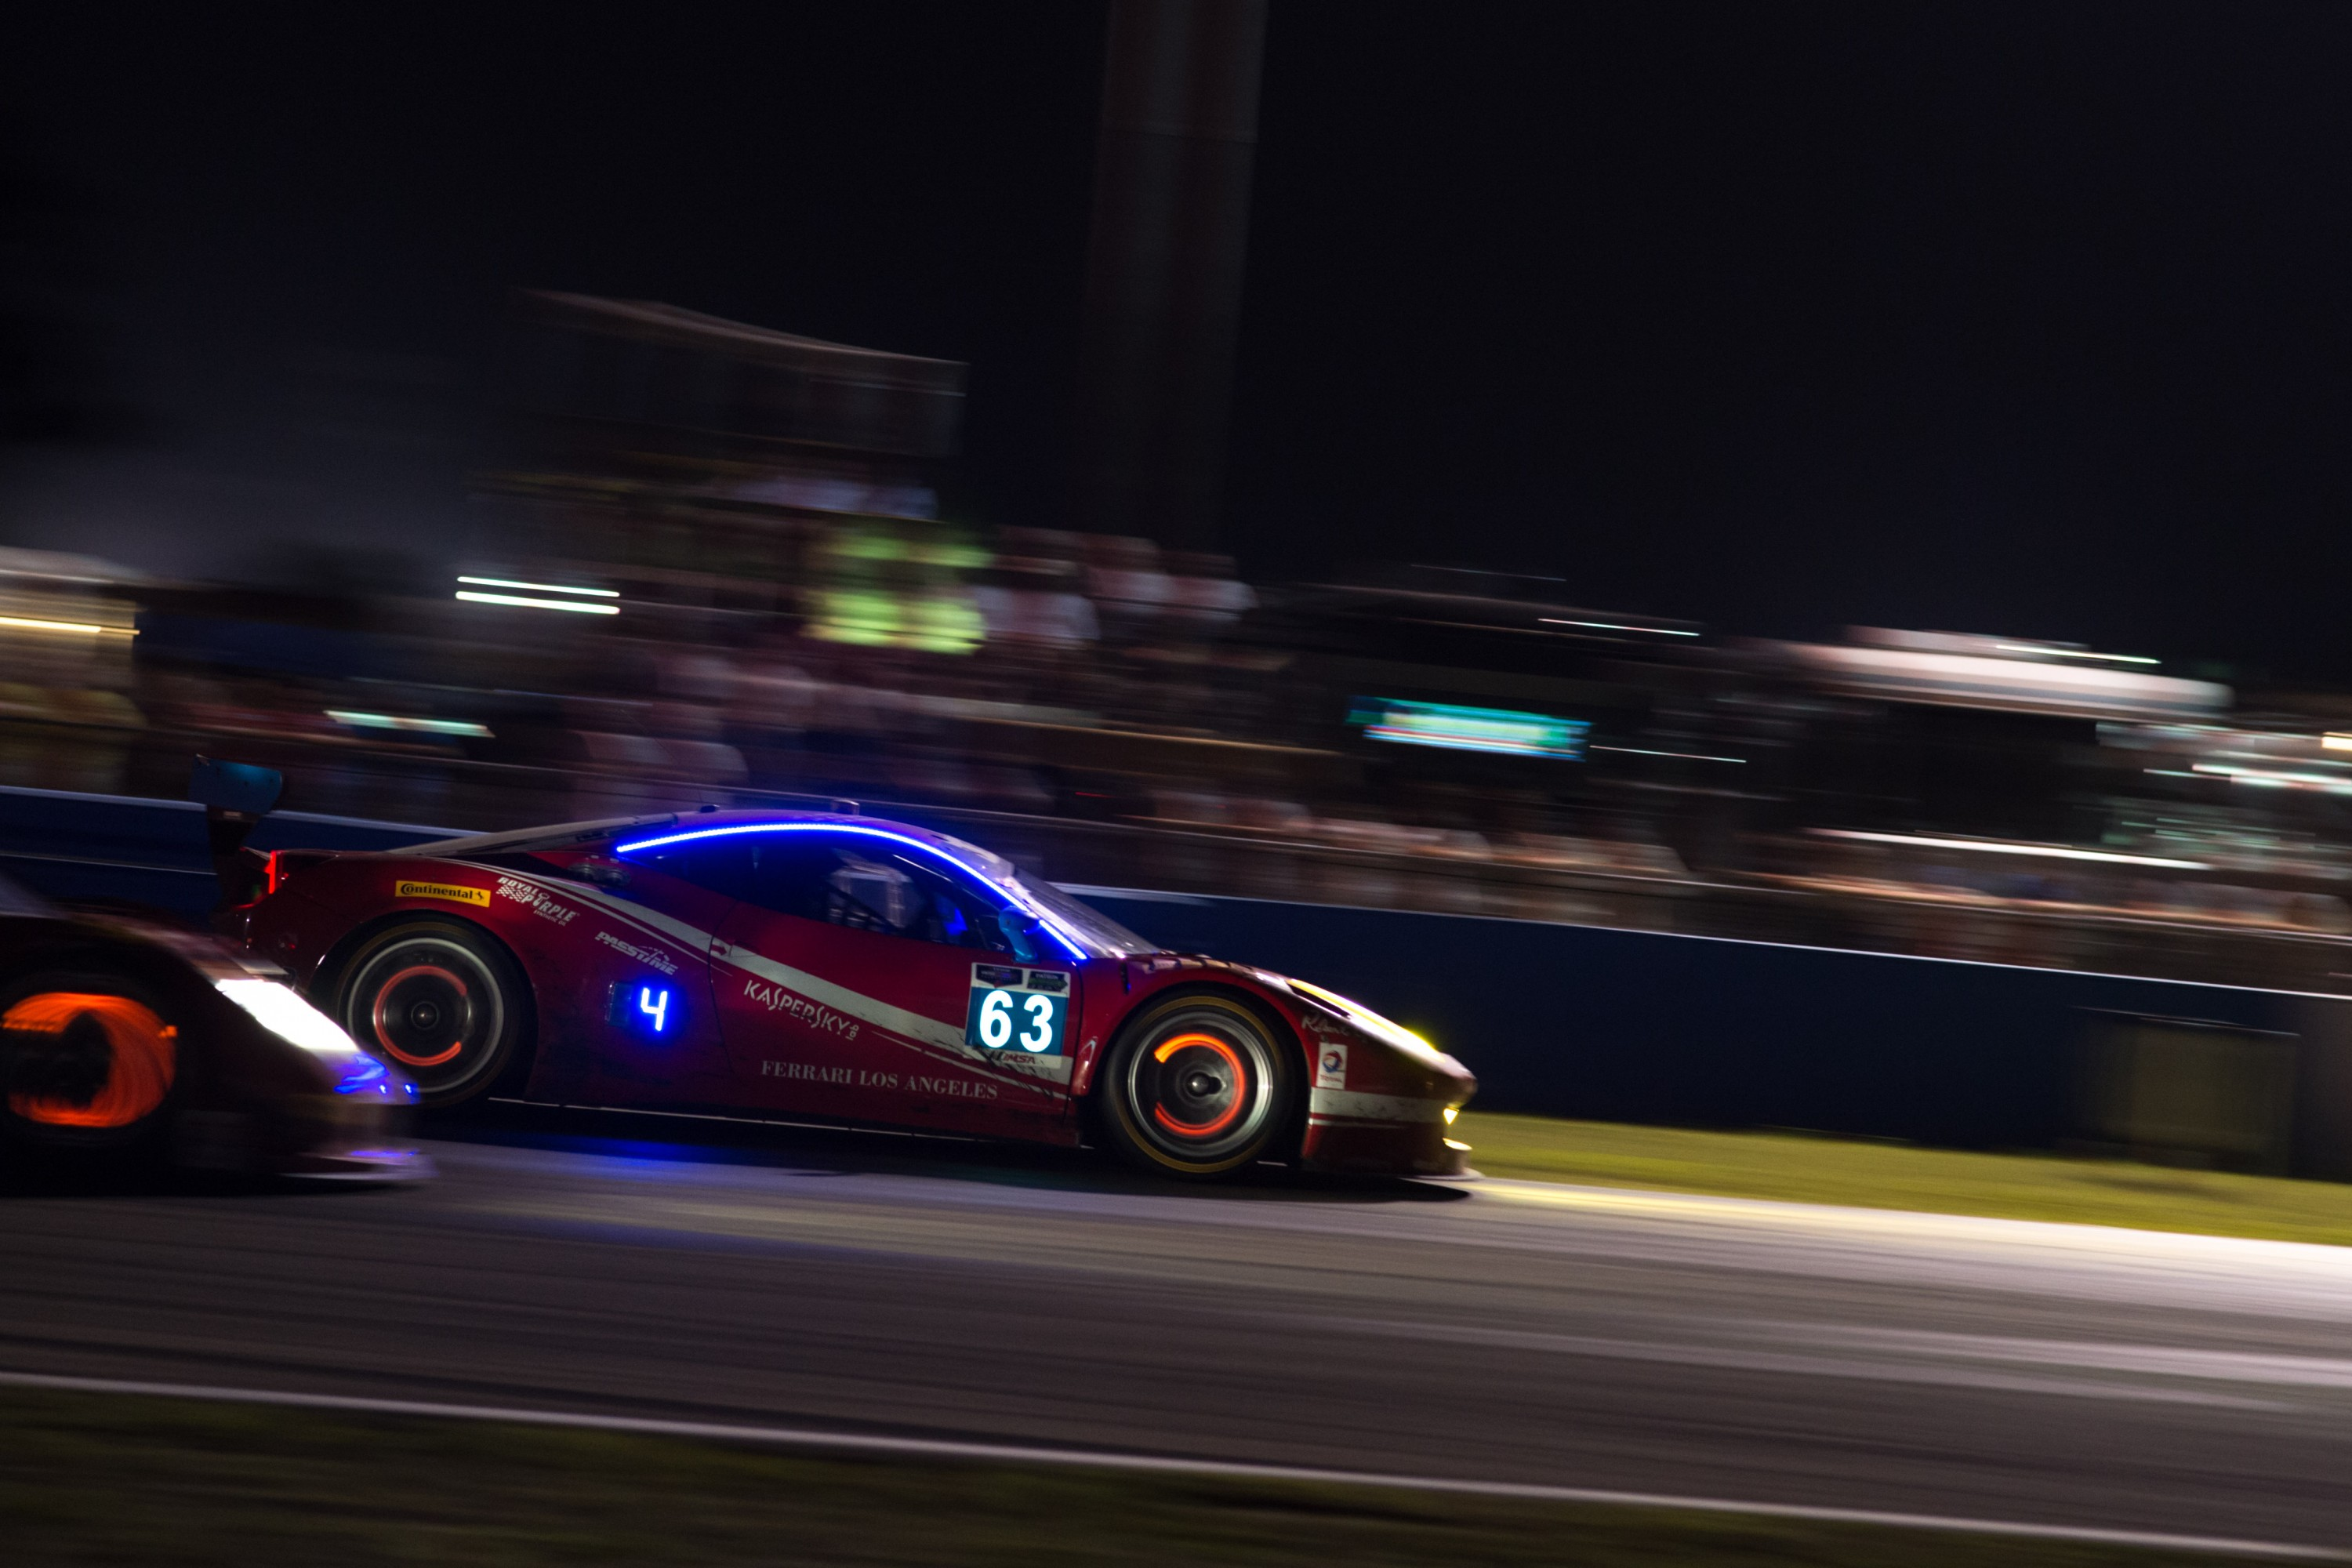 A Day in the Life: 12 Solid Hours Photographing an Endurance Sportscar Race